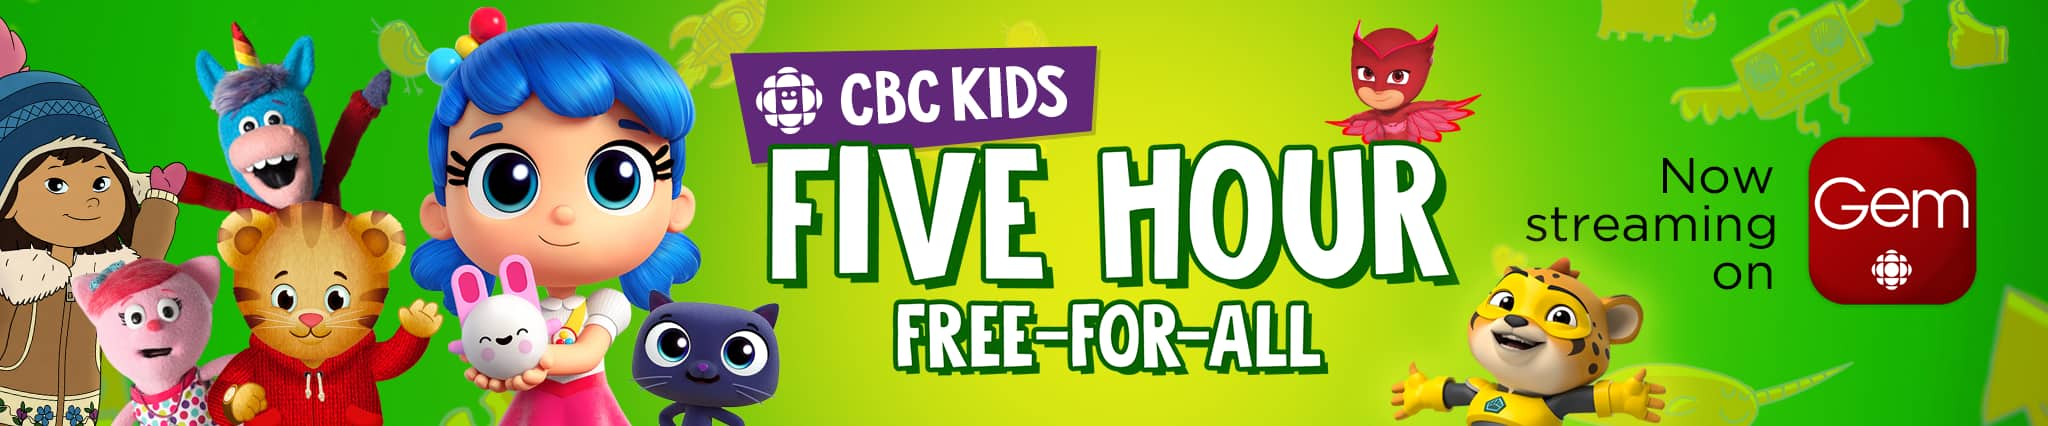 CBC Kids five hour free-for-all